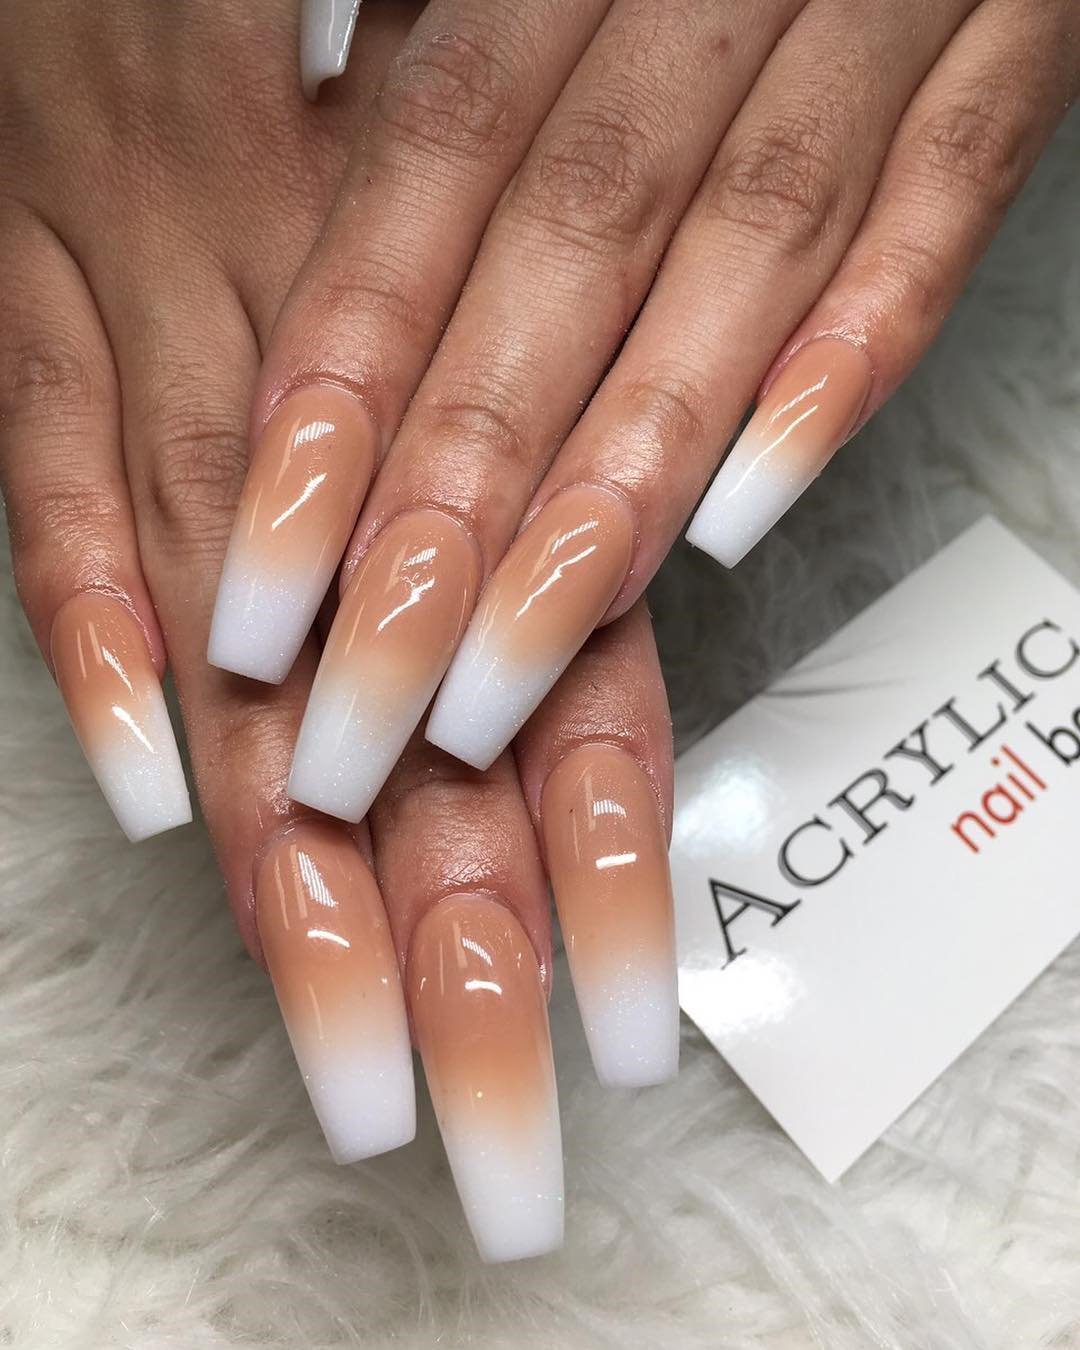 40 Acrylic Nails Design Ideas Inspire You 2019 Page 15 Of 48